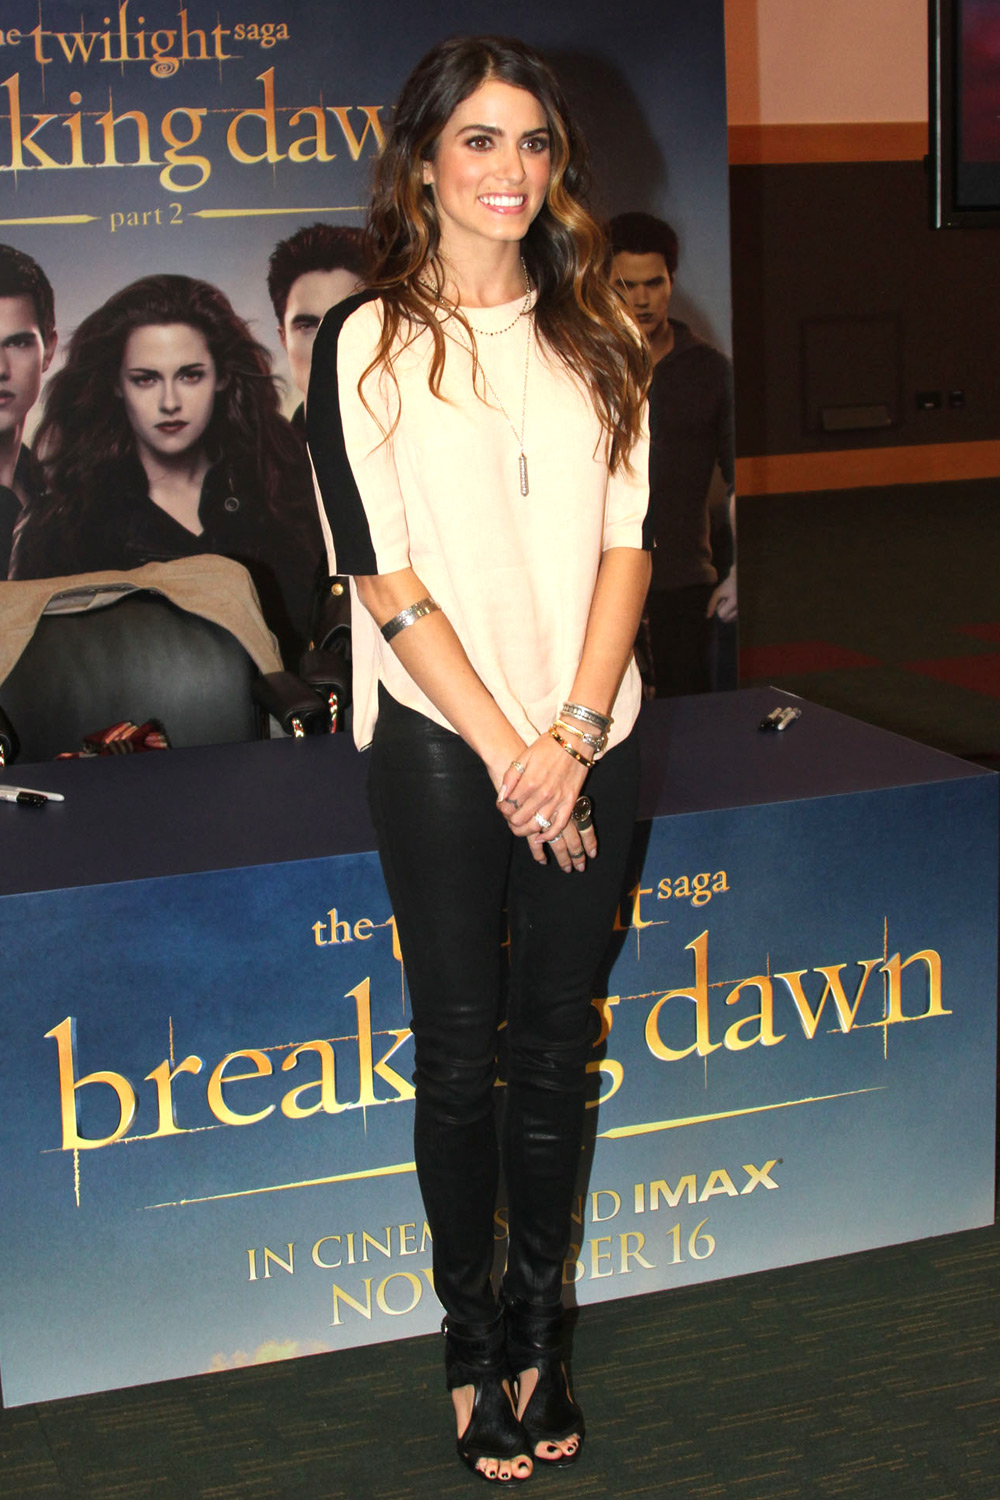 Nikki Reed photocall for The Twilight Saga: Breaking Dawn Part 2